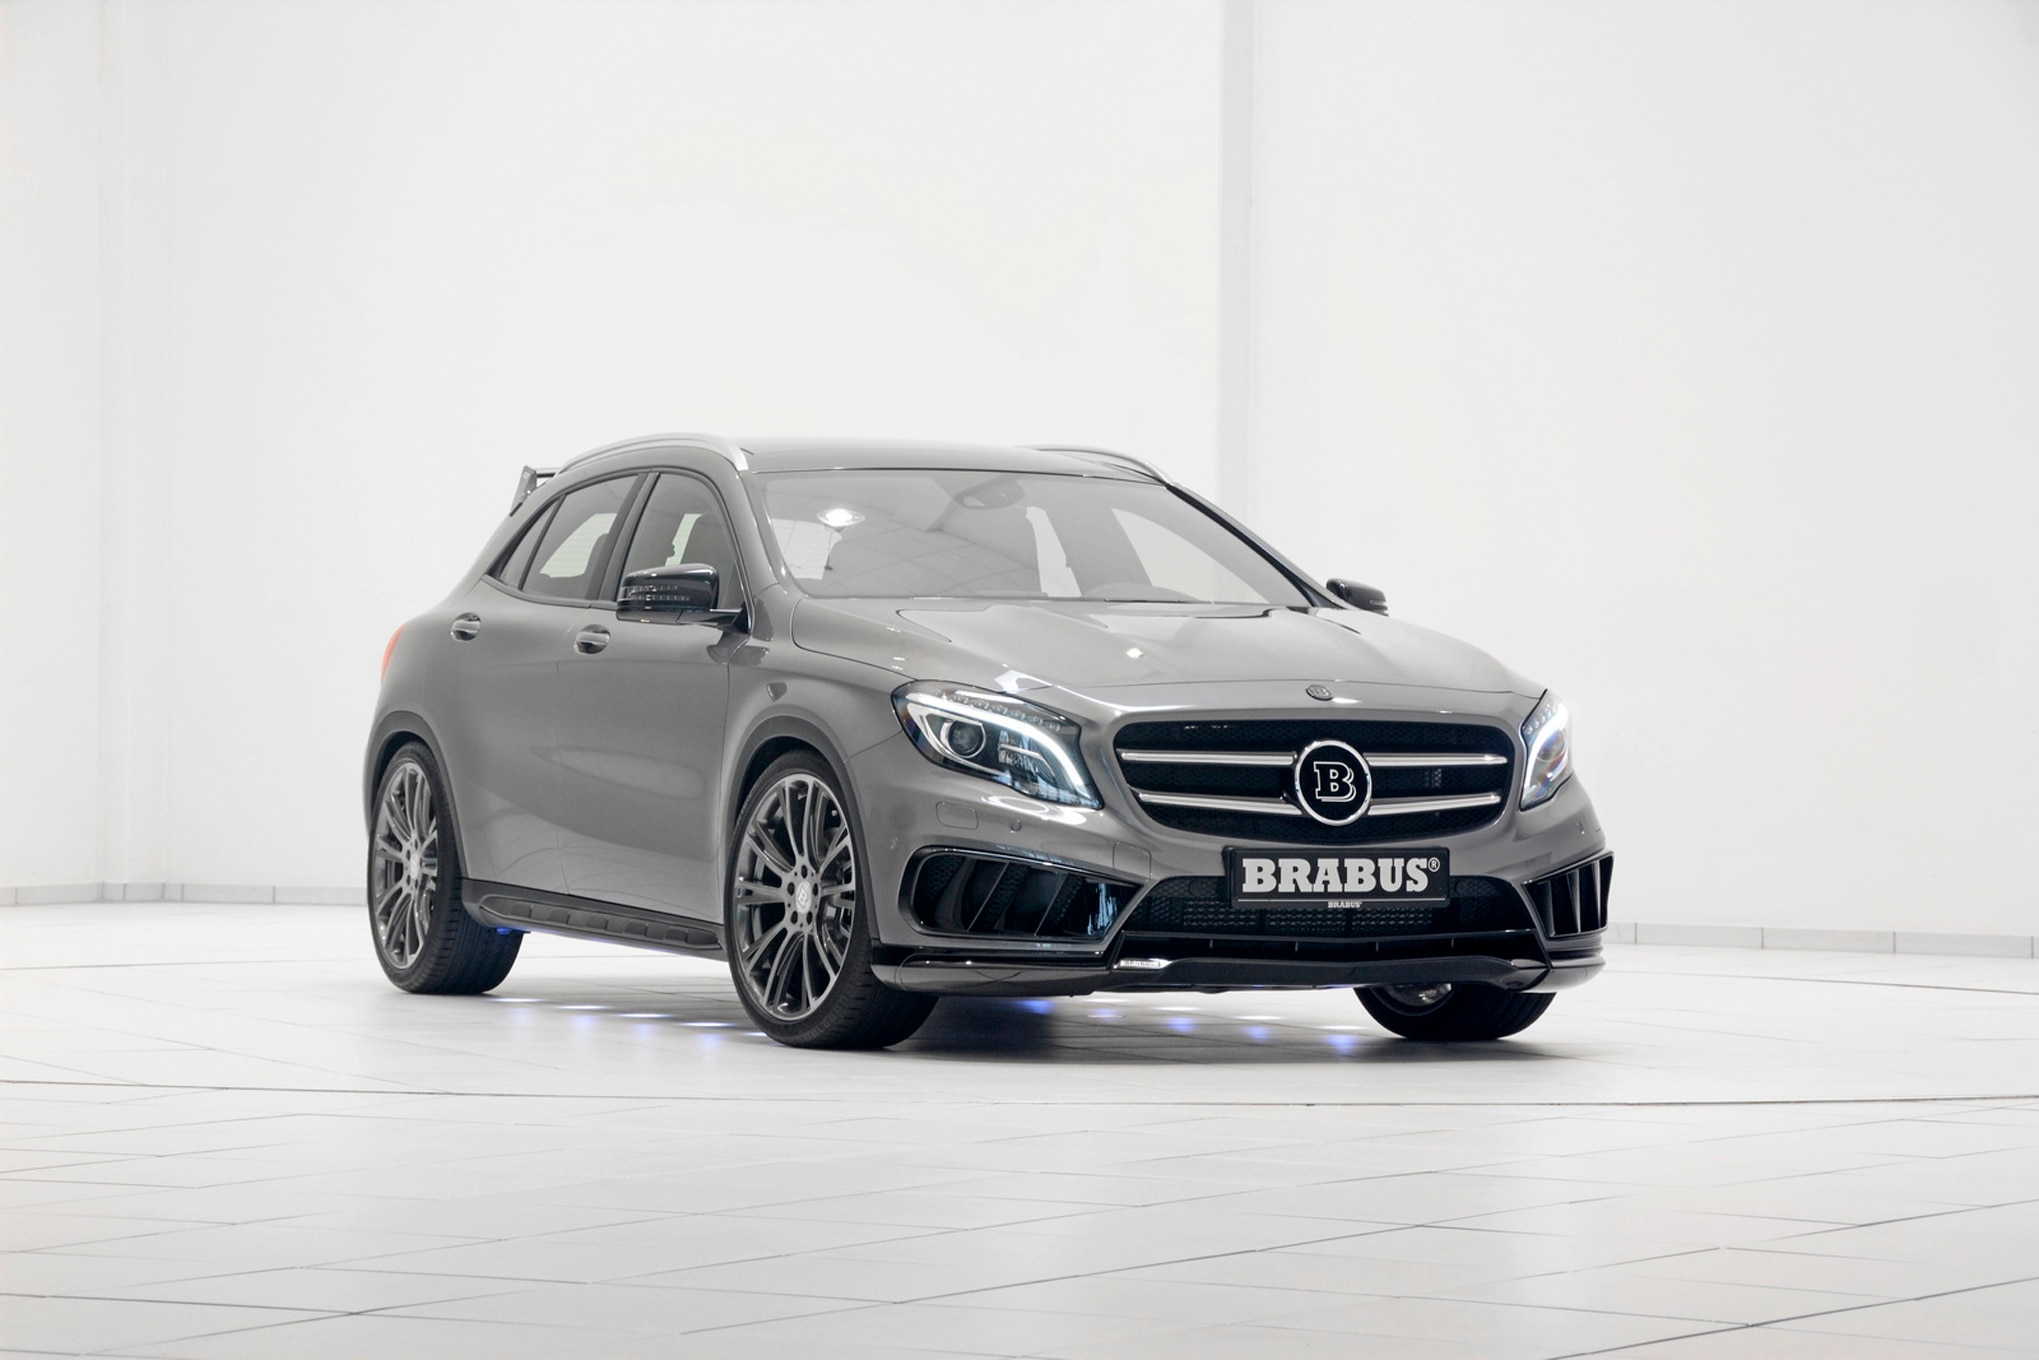 Brabus tunes 2015 mercedes benz gla45 amg to 394 hp for Mercedes benz brabus amg